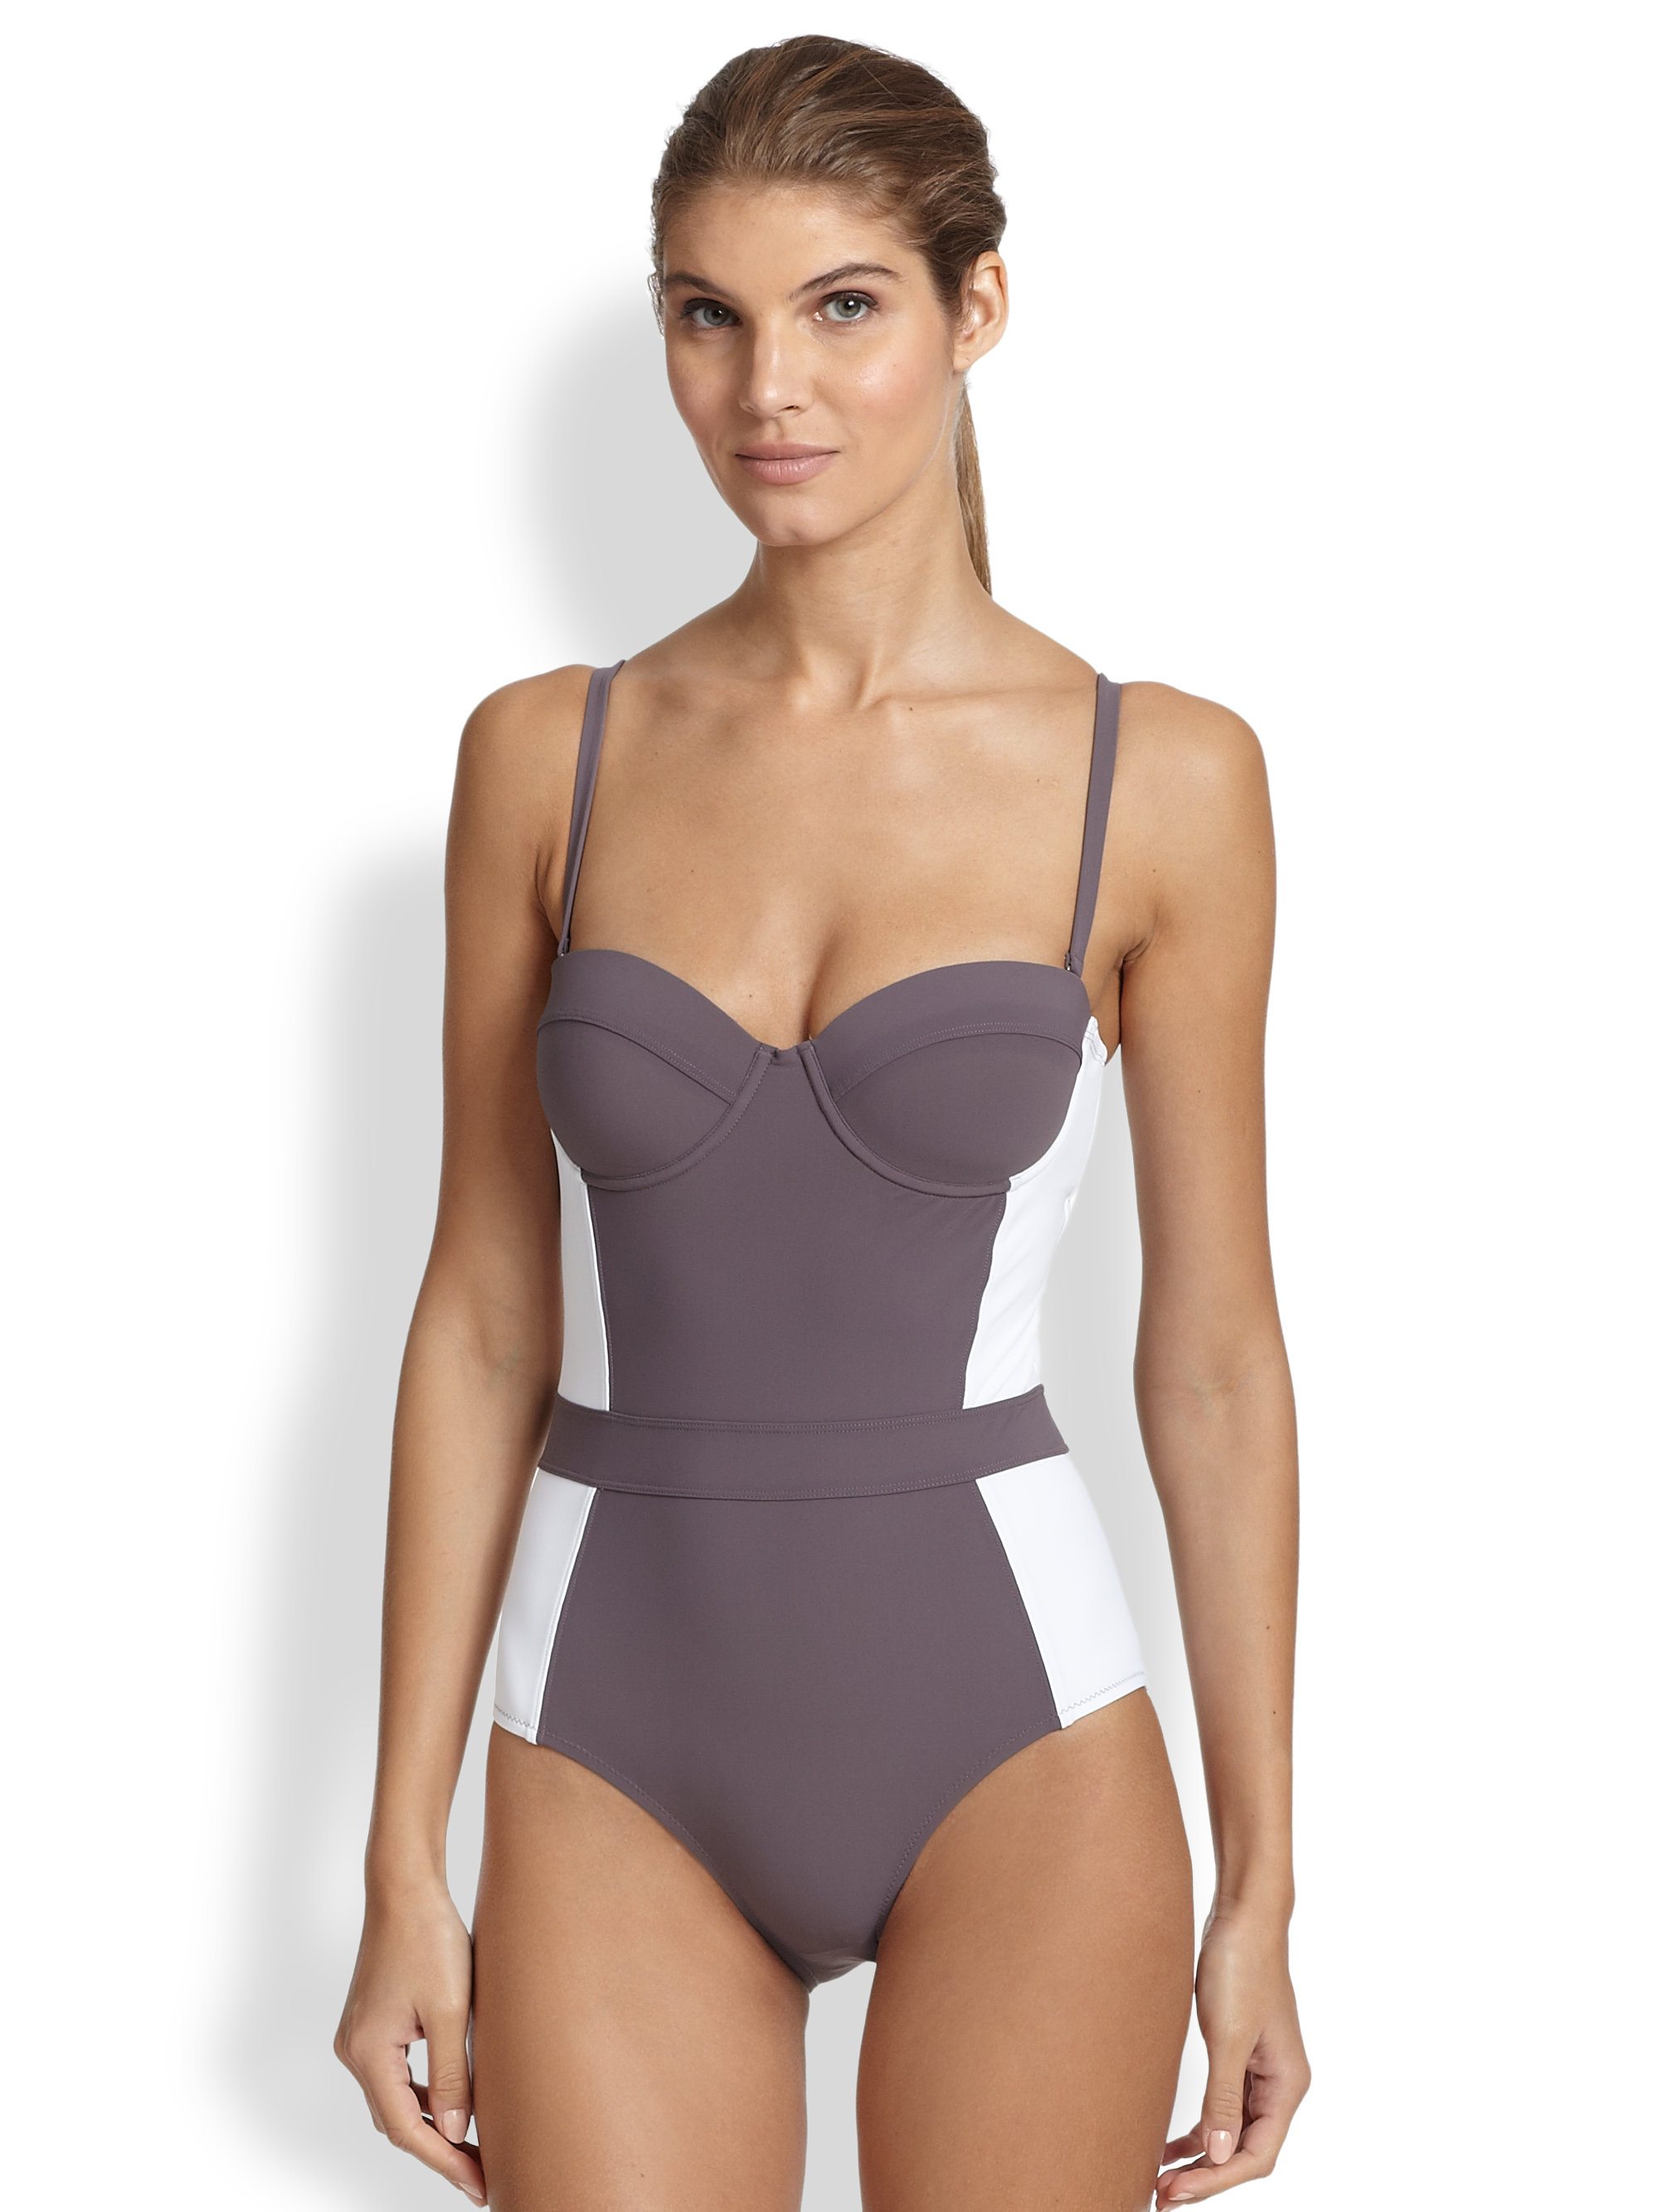 dfaf7c18fe3fc Lyst - Tory Burch Colorblock One-piece Swimsuit in Gray